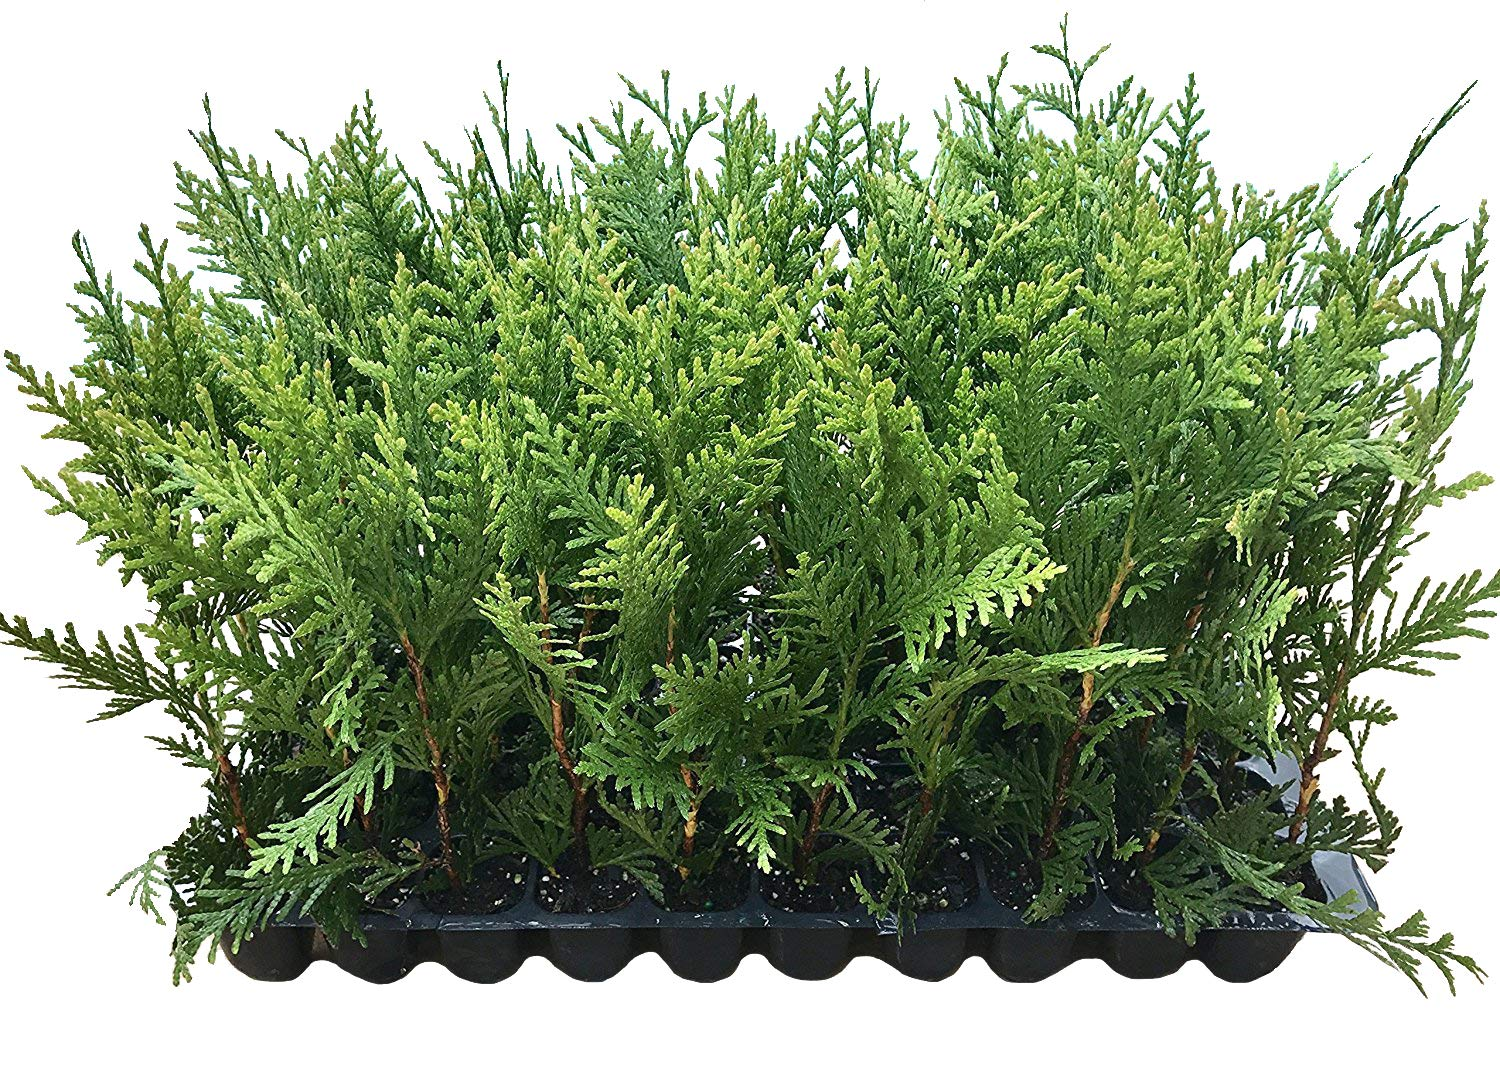 Thuja Green Giant Arborvitae - 10 Live Trees 2'' Pot Size - Evergreen Privacy Plants